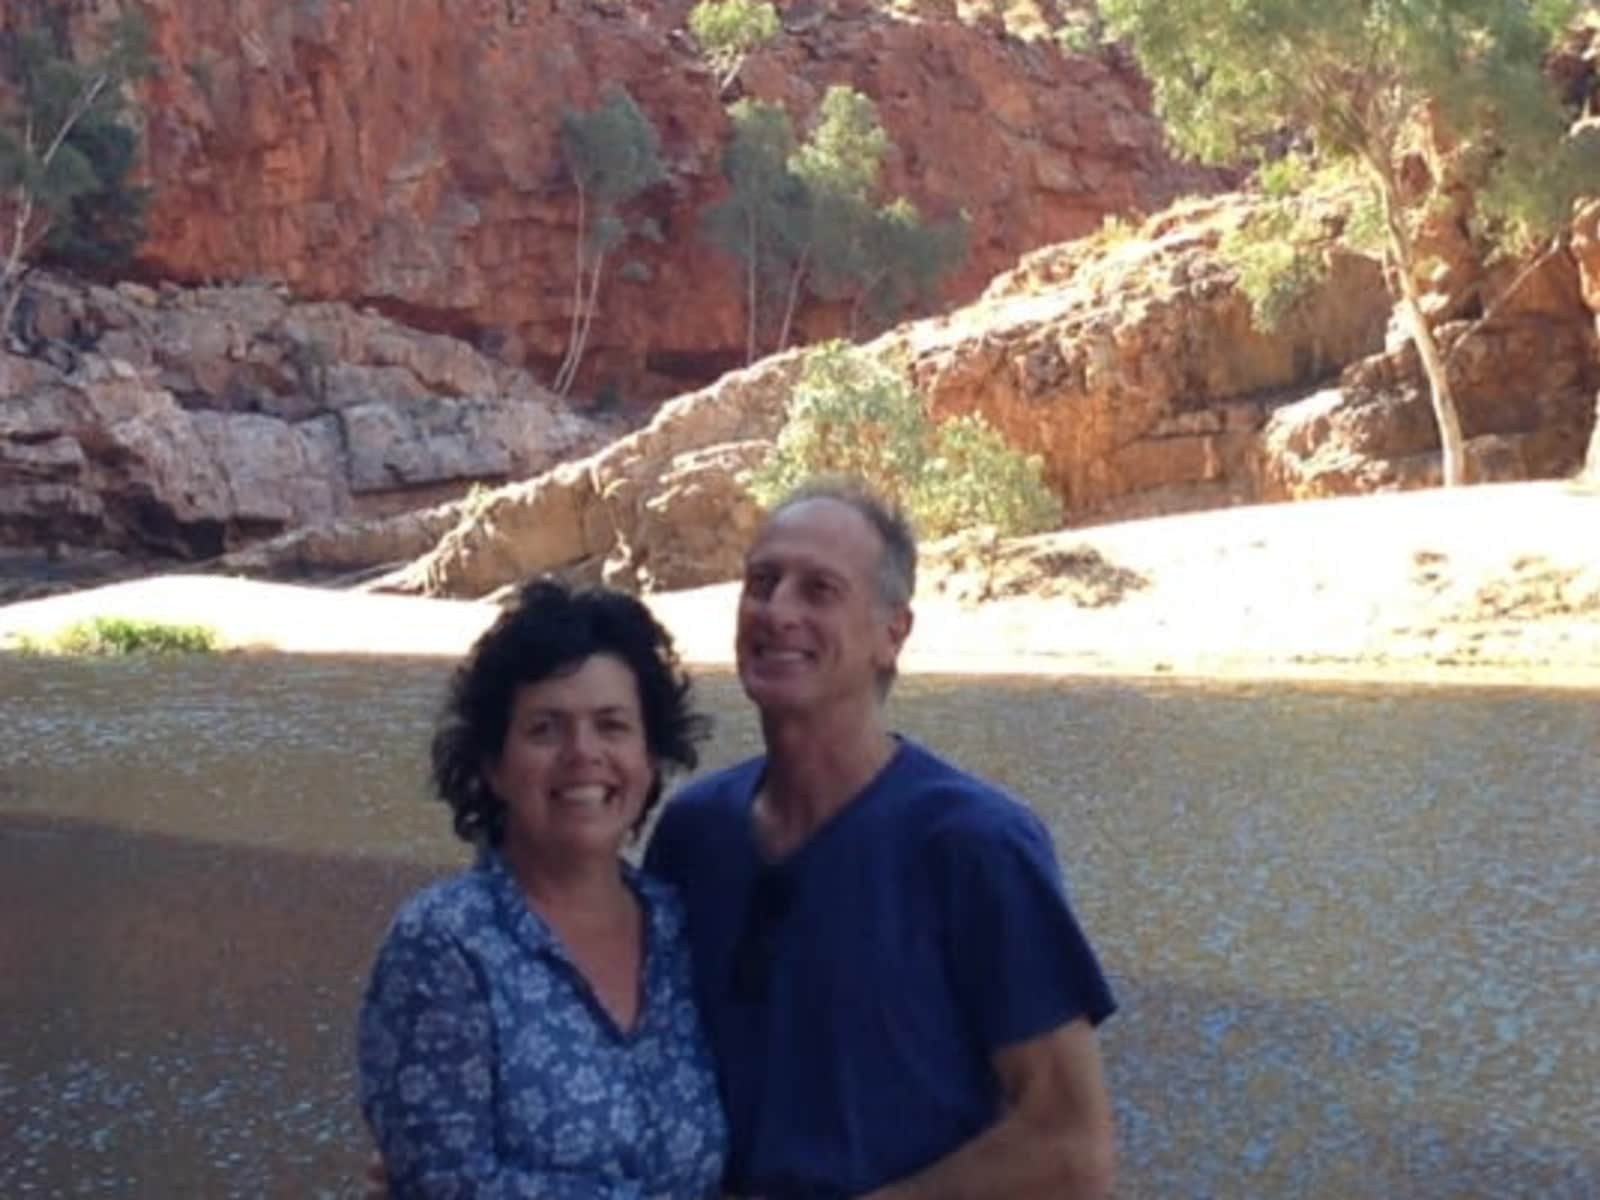 Linda & Brian from Armidale, New South Wales, Australia